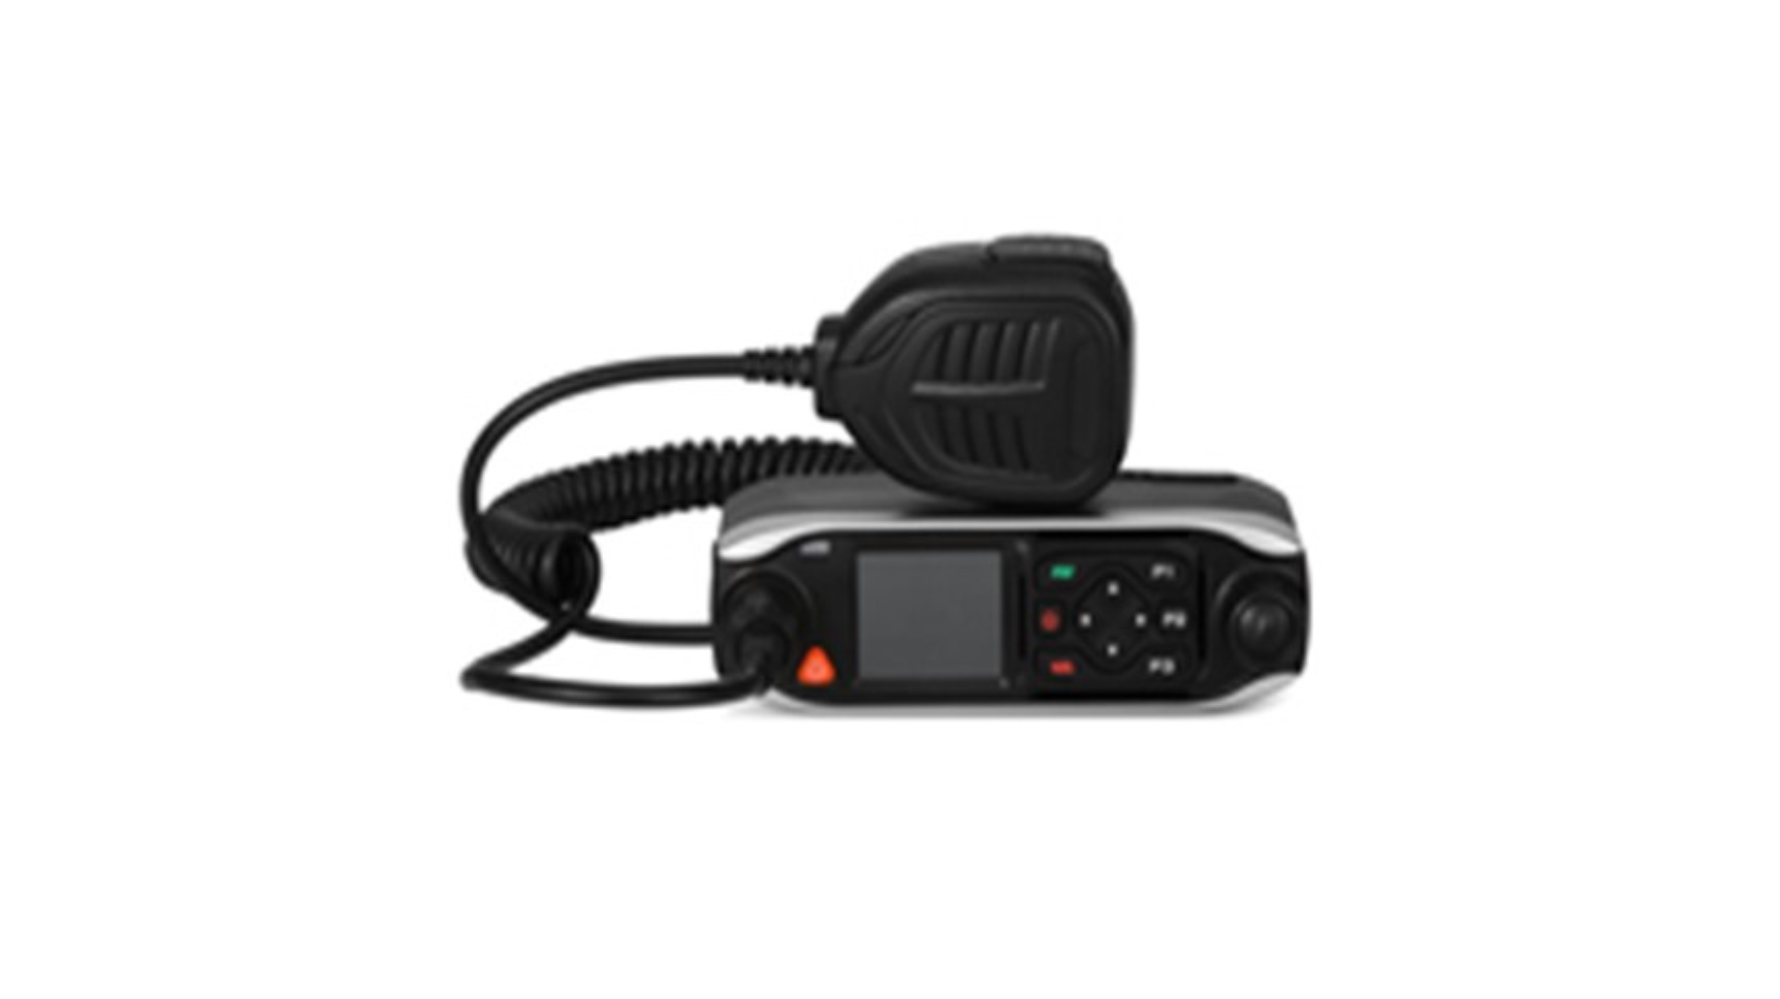 photo of Kirisun M50 - Push to talk (PTT) over Cellular & Wi-Fi, mobile two way radio